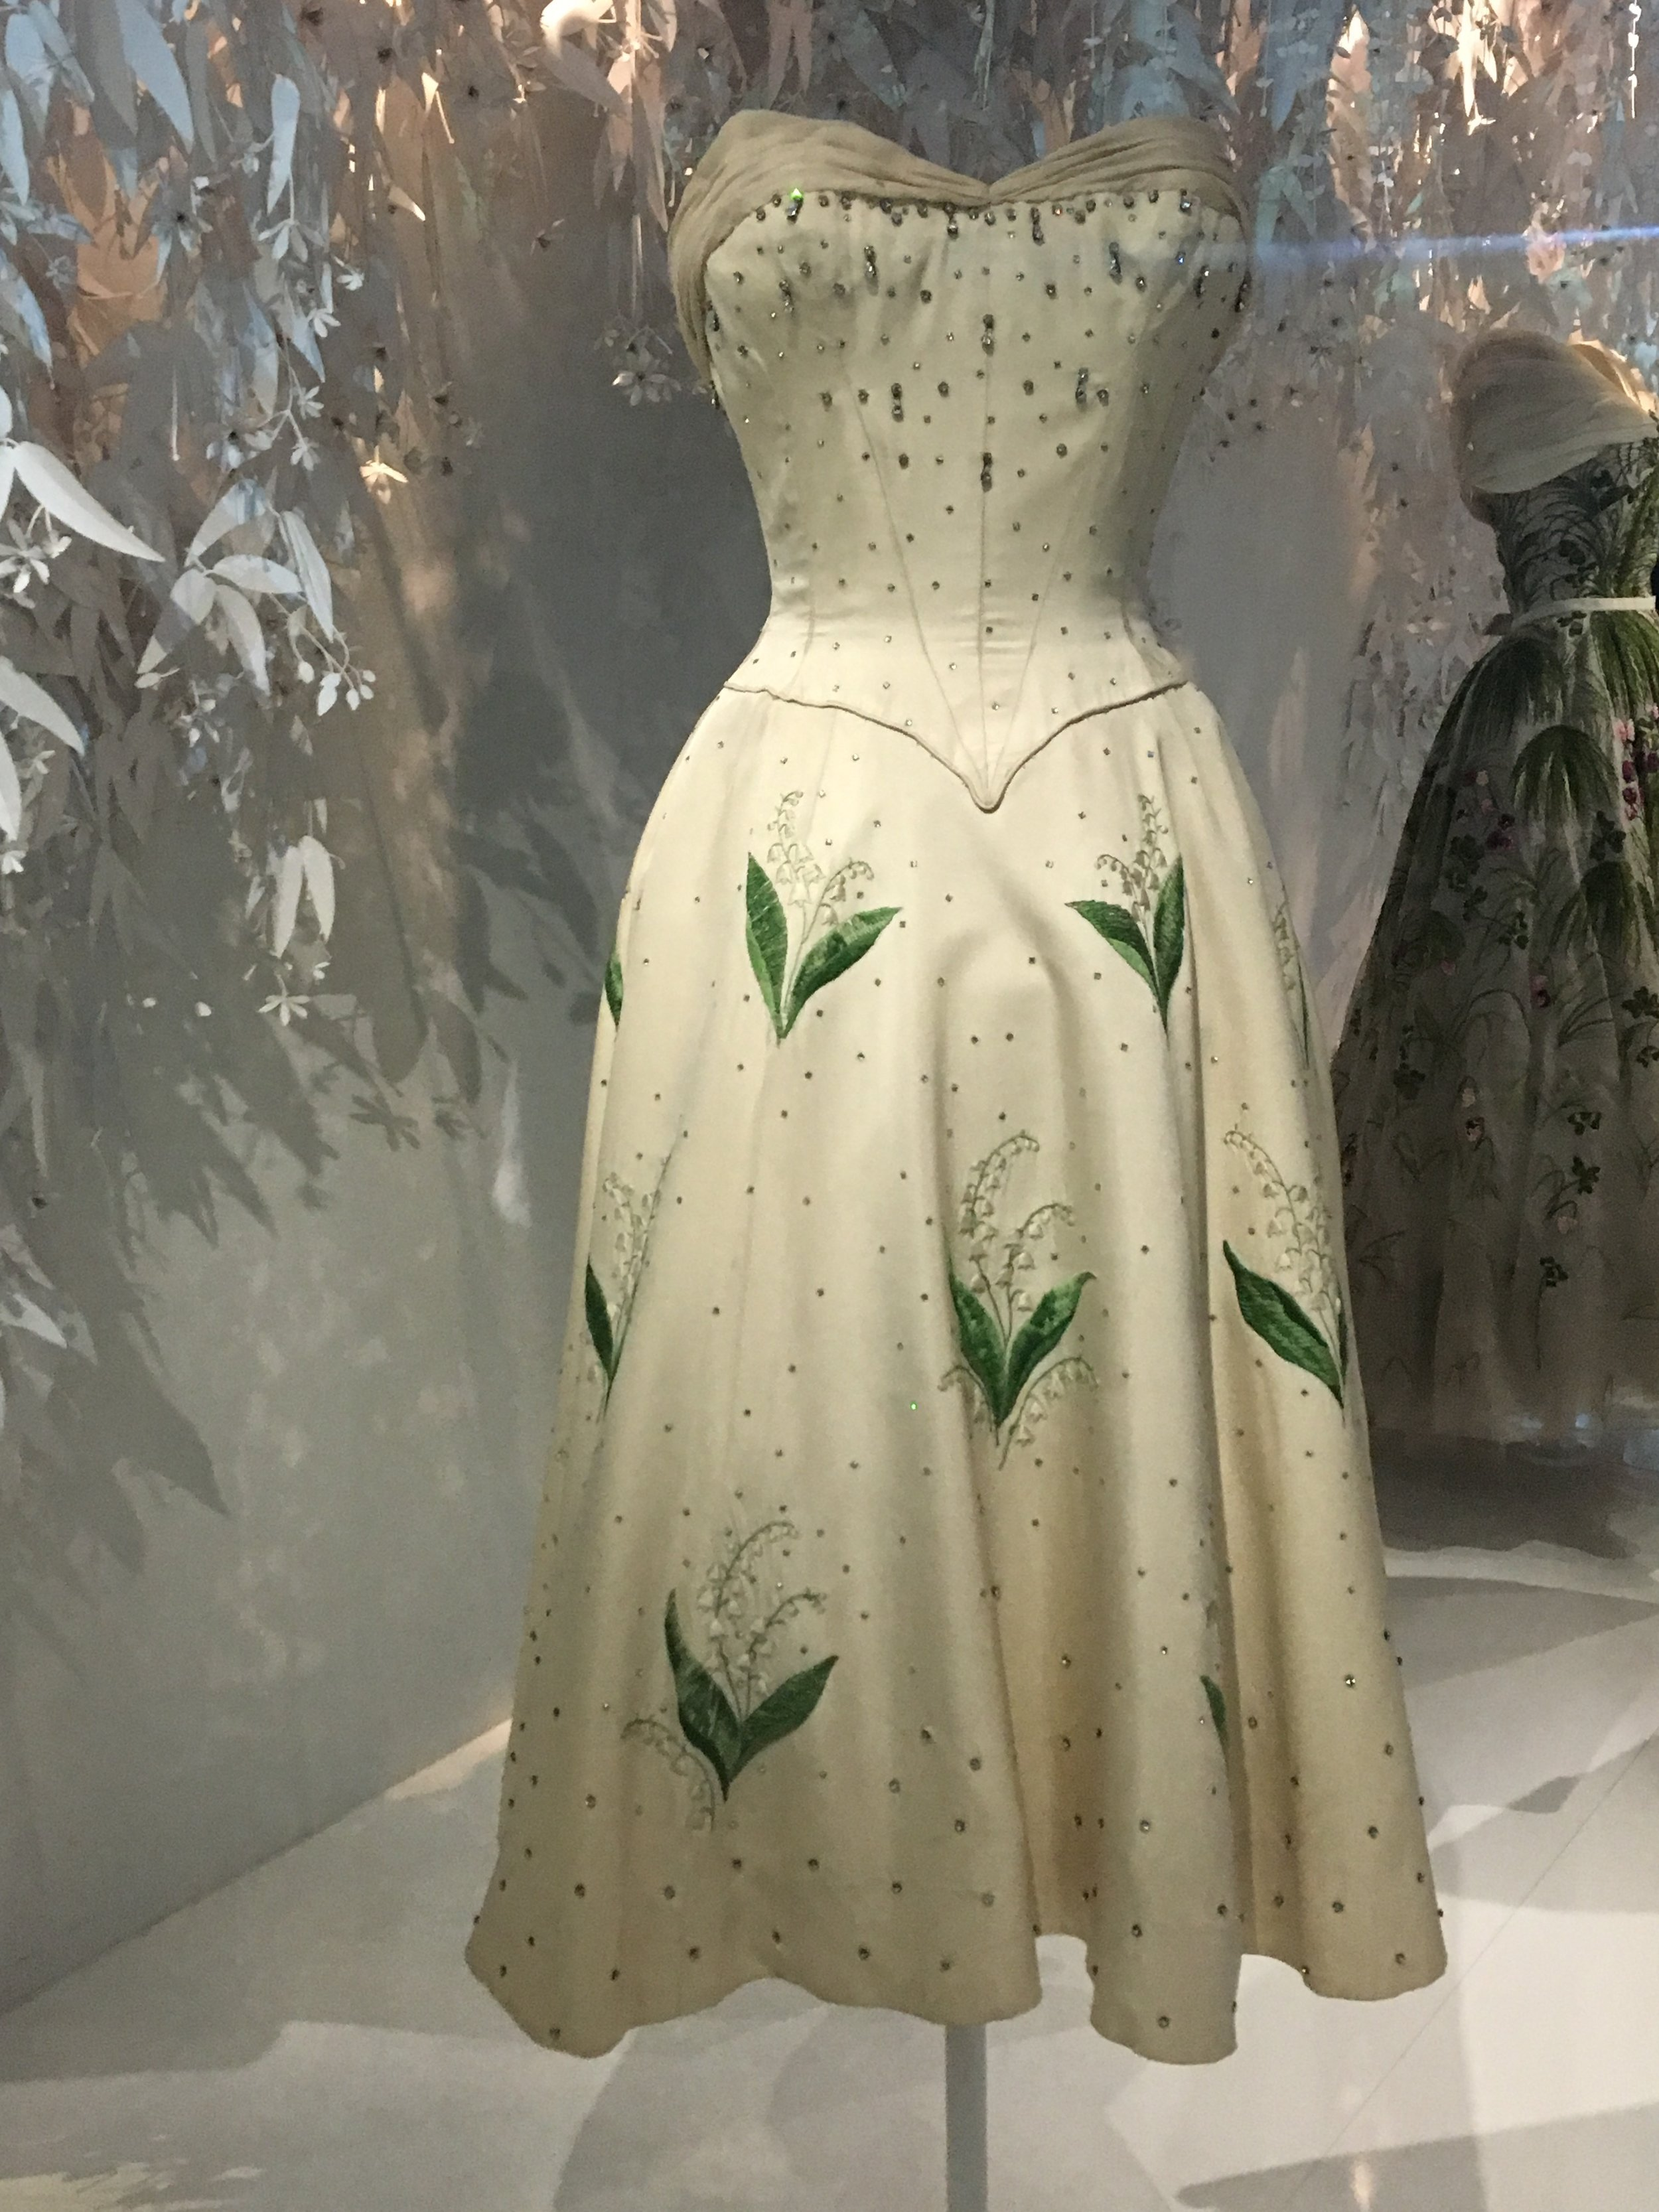 Christian Dior designed for 'Paris, Palace Hotel', 1956